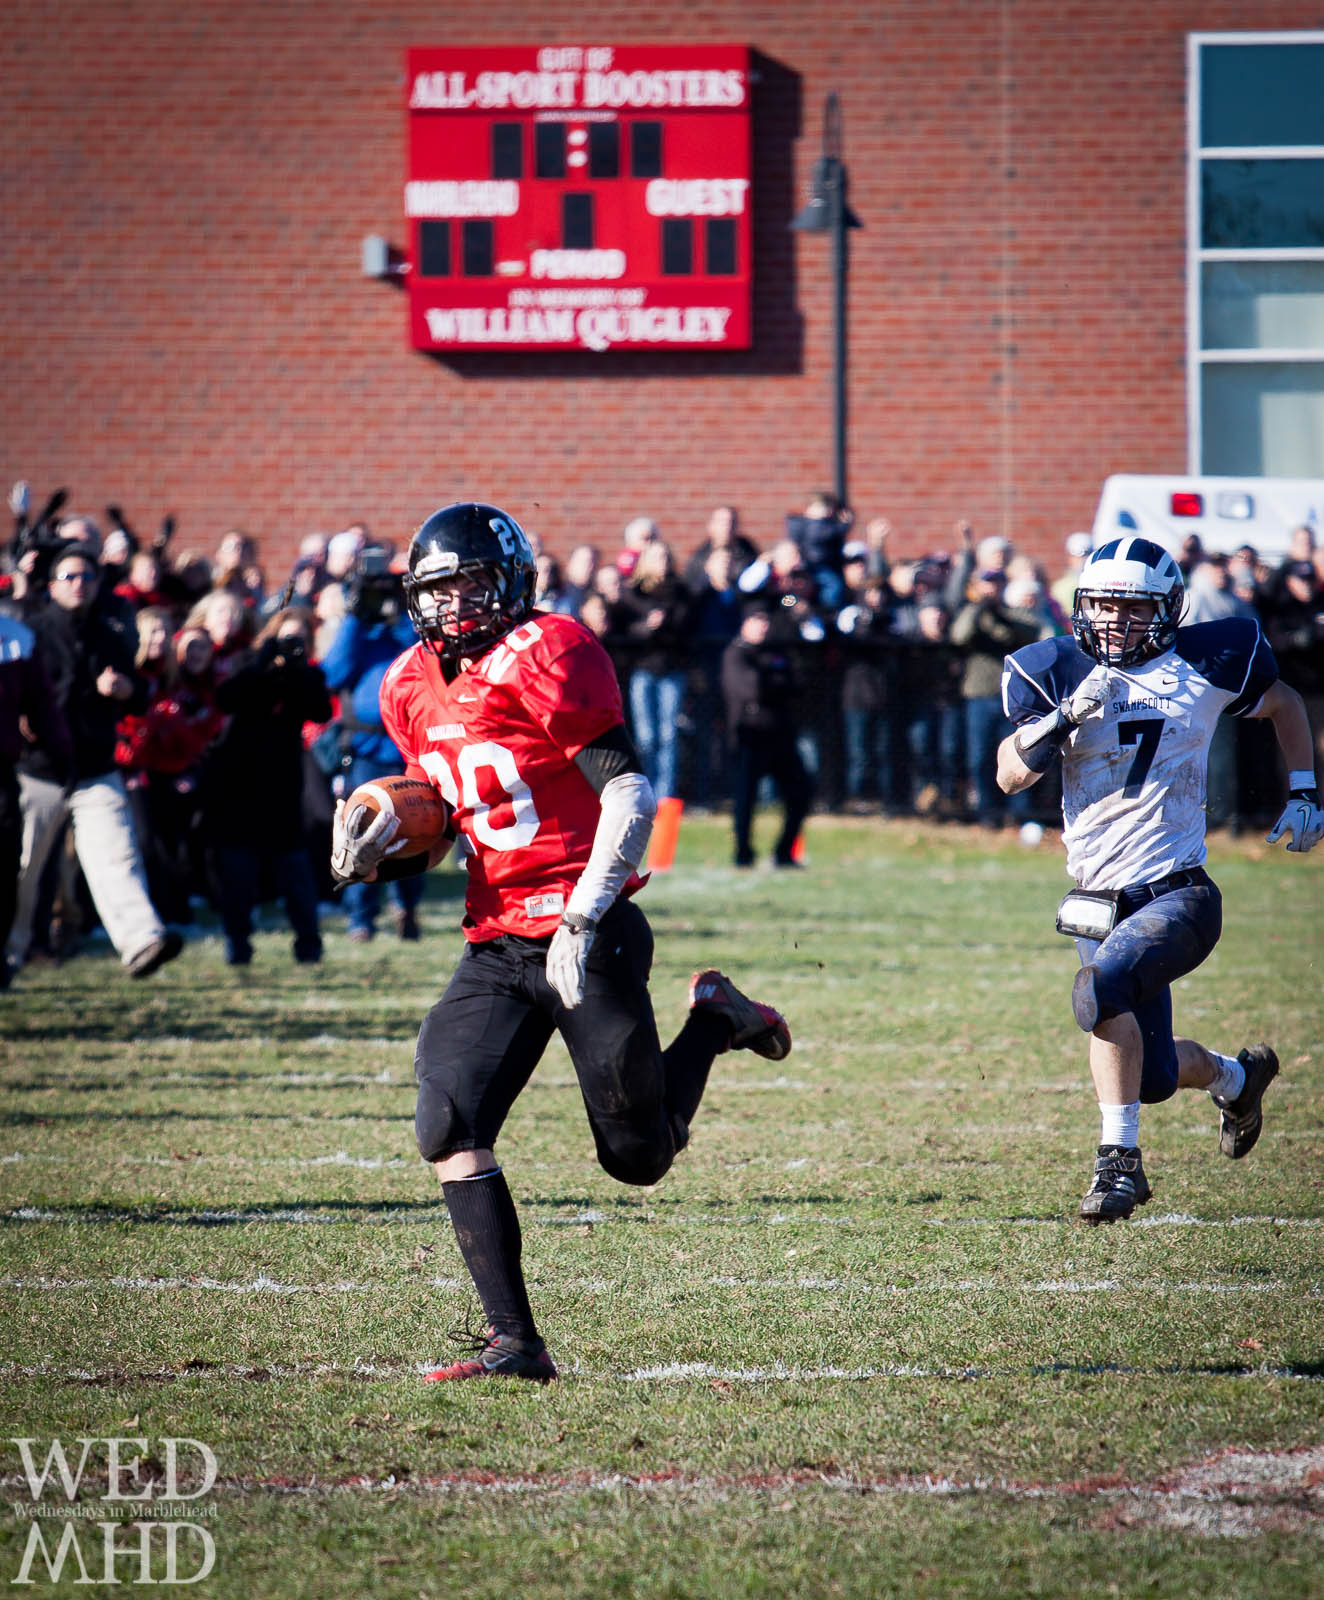 Marblehead Swampscott Thanksgiving Football game